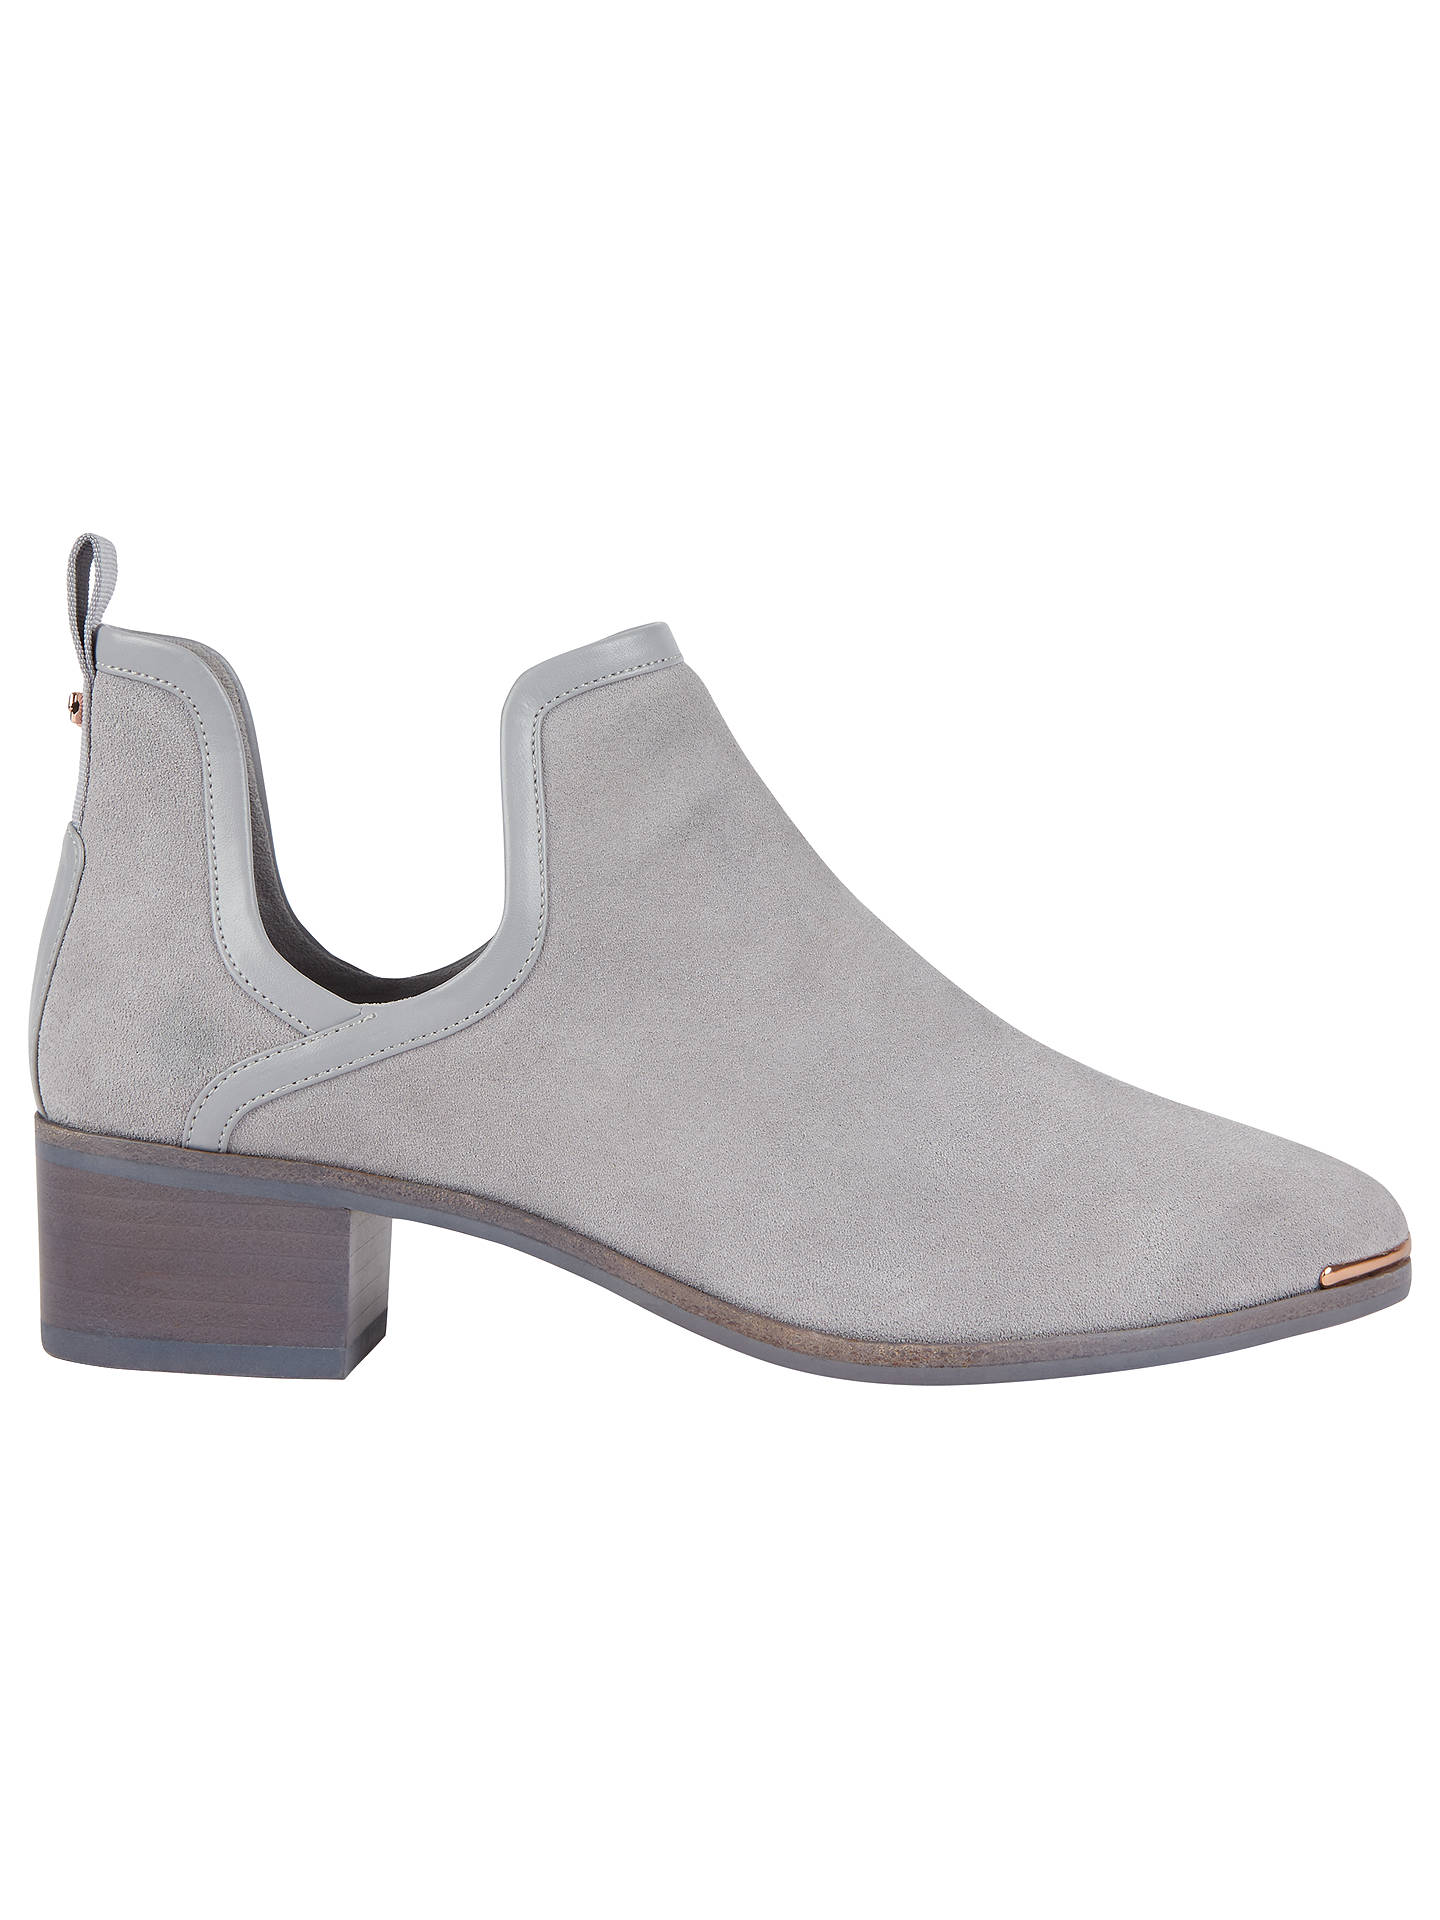 0f9358f319c9 Ted Baker Twillo Cut Out Ankle Boots at John Lewis   Partners